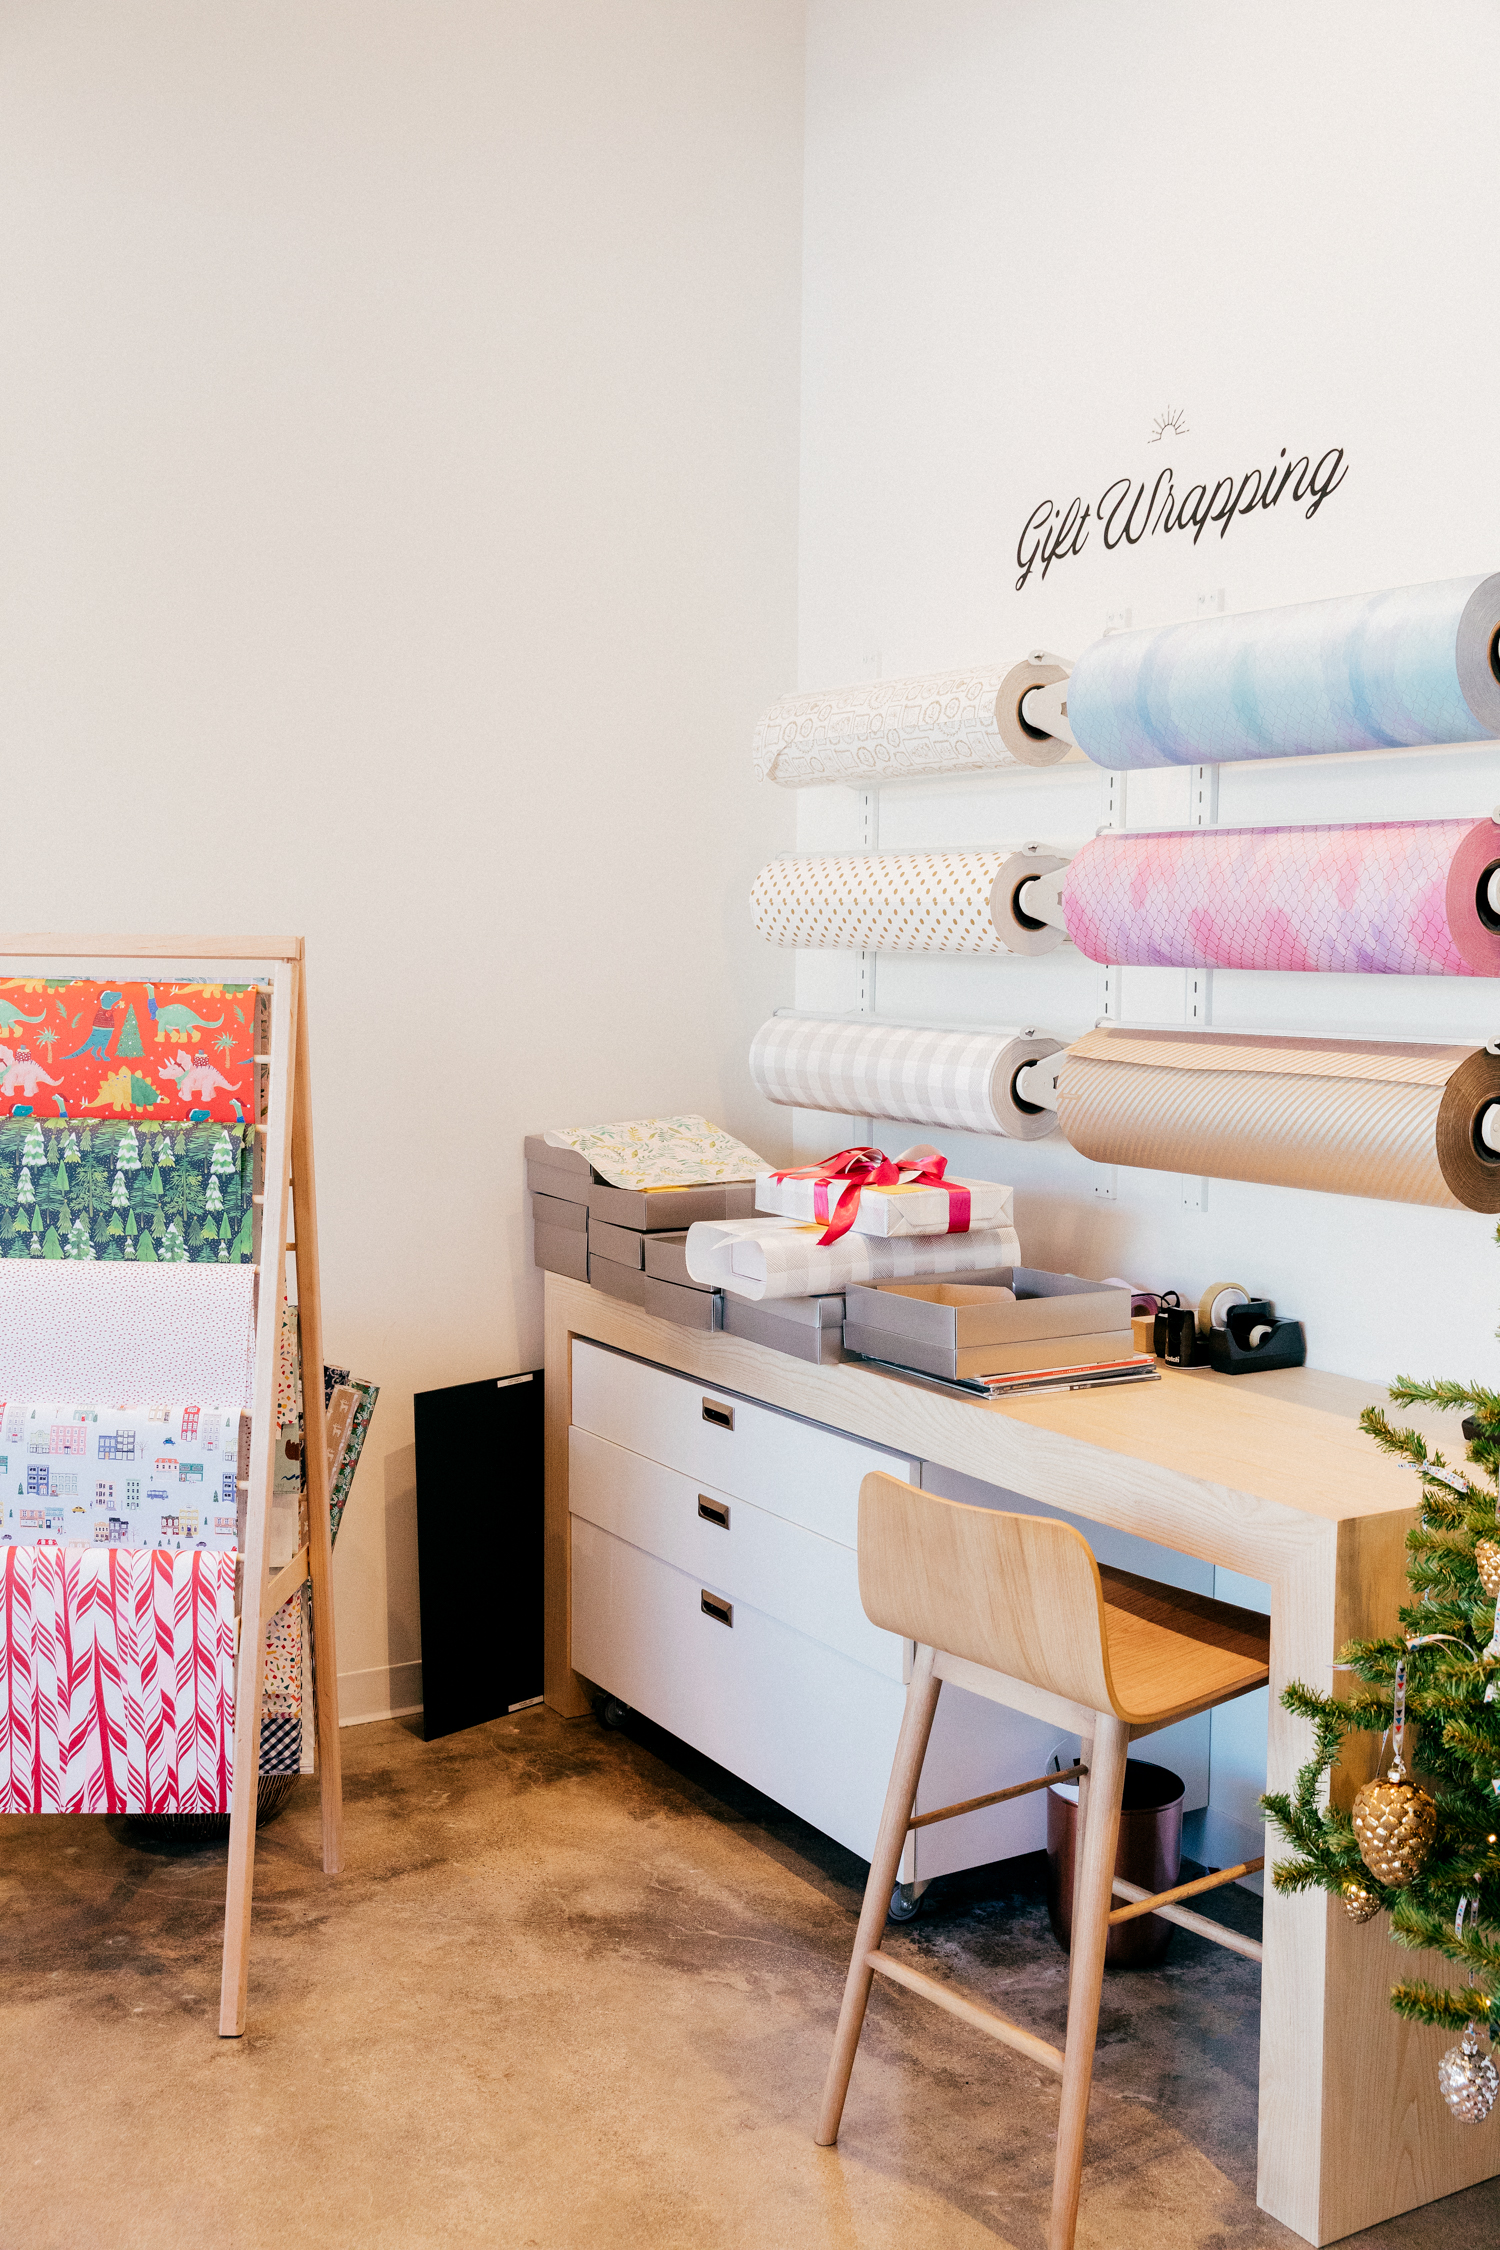 Nordstrom Local in Brentwood - Gift Wrapping Station